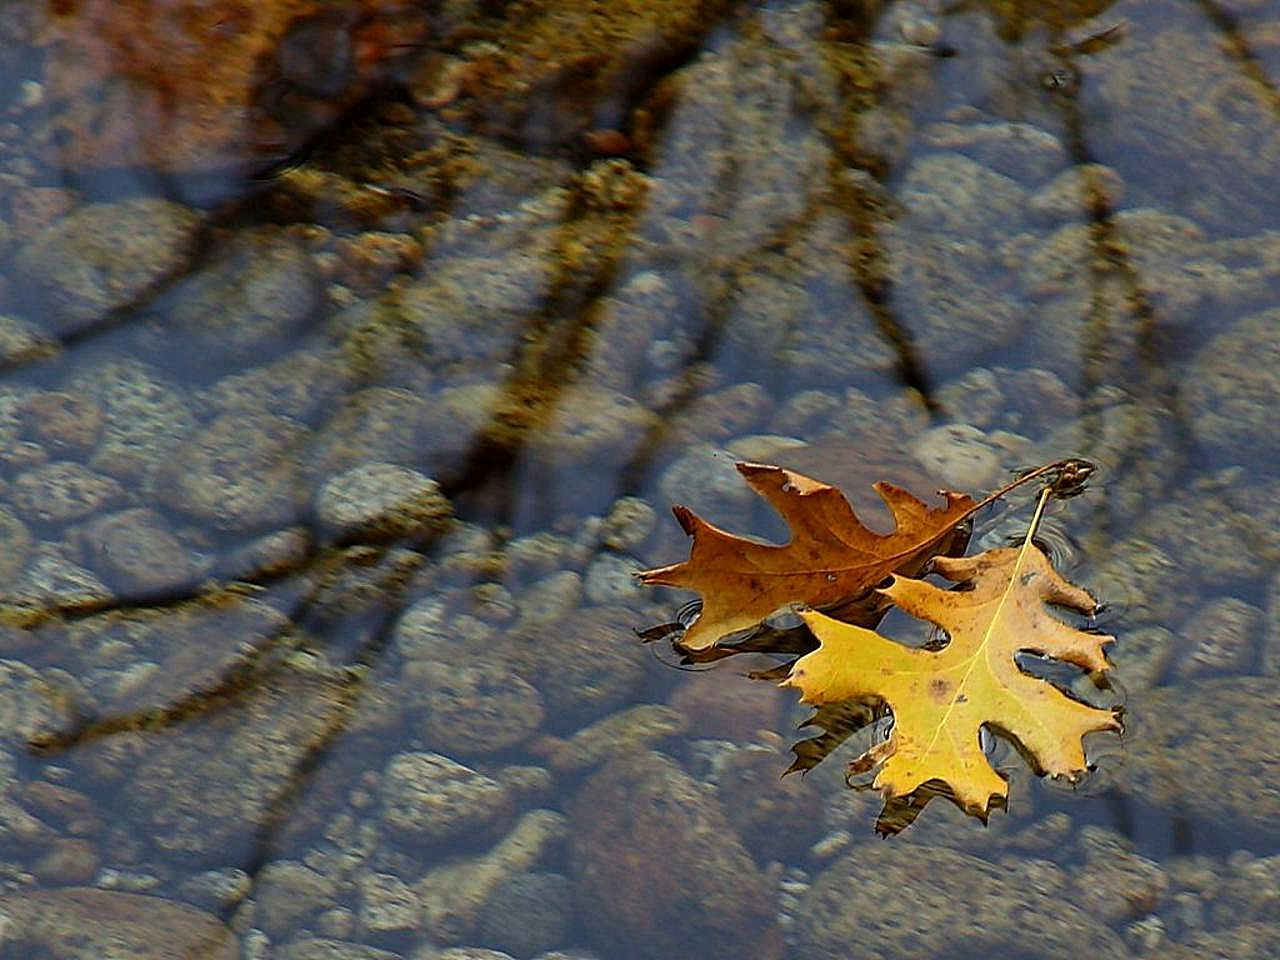 300 Wallpaper Hd Free Picture Leaf Leaves Streams Water Reflections